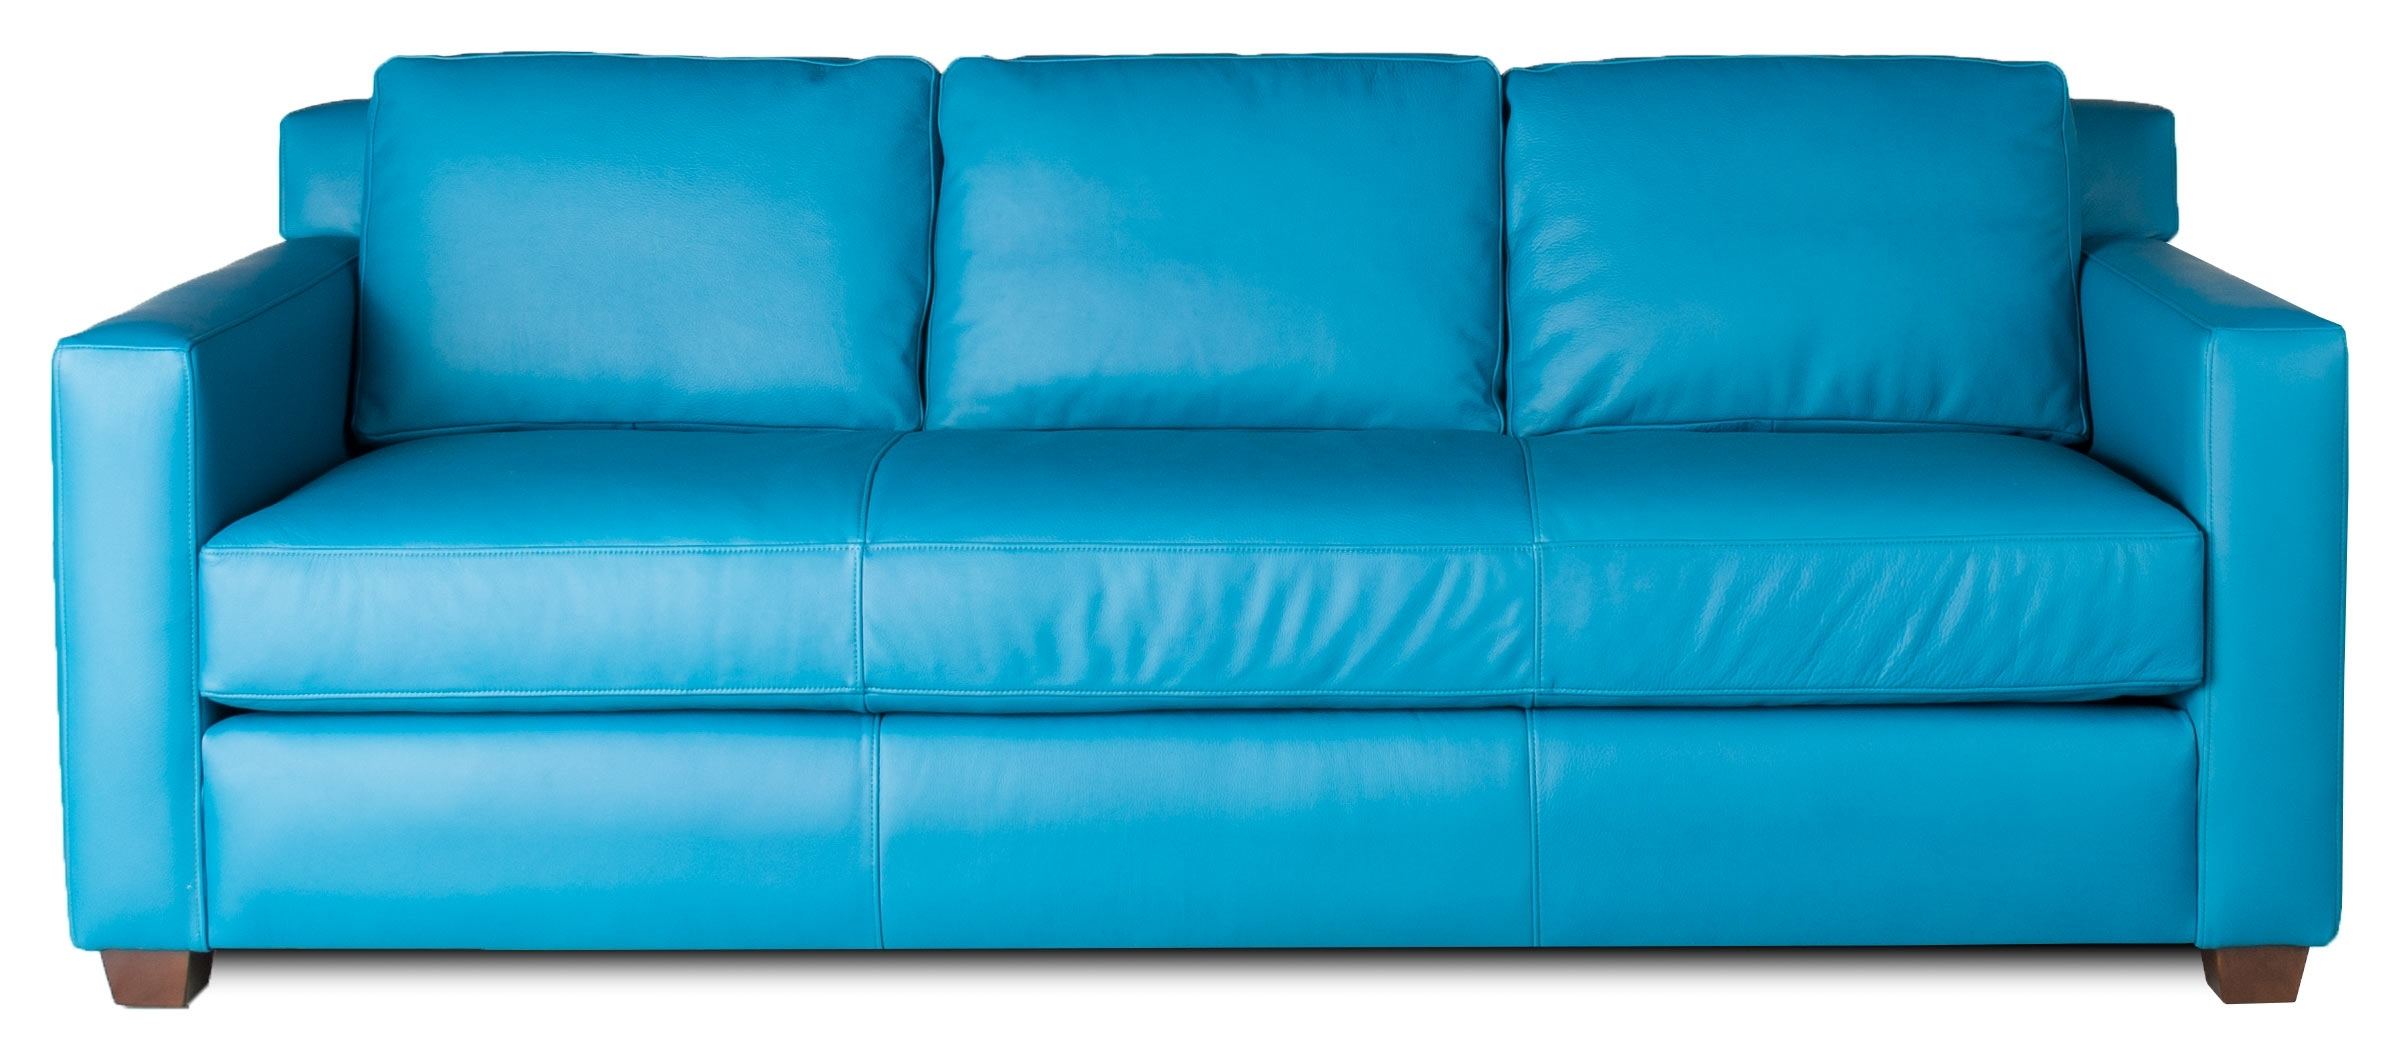 Catosfera Pertaining To Best And Newest Aqua Sofas (View 10 of 15)